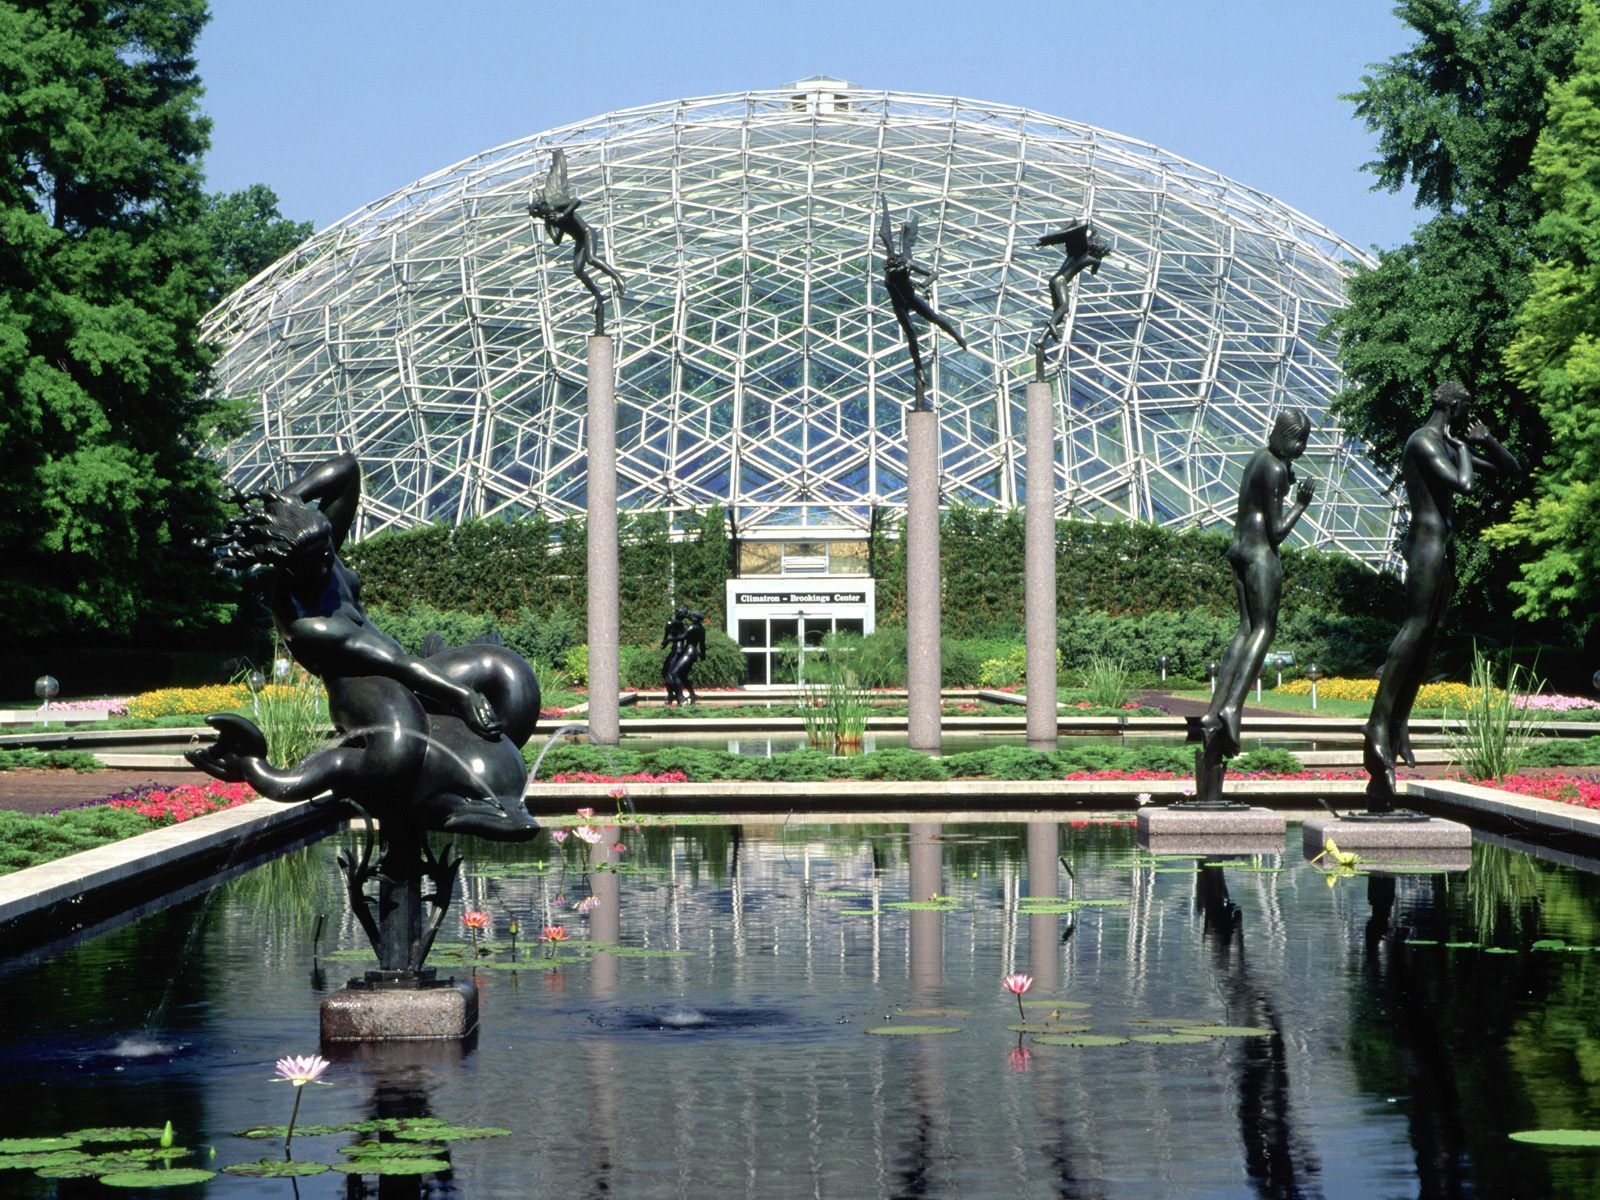 Climatron Botanical Gardens St Louis Missouri This Glasshouse Symbolized A New Era When It